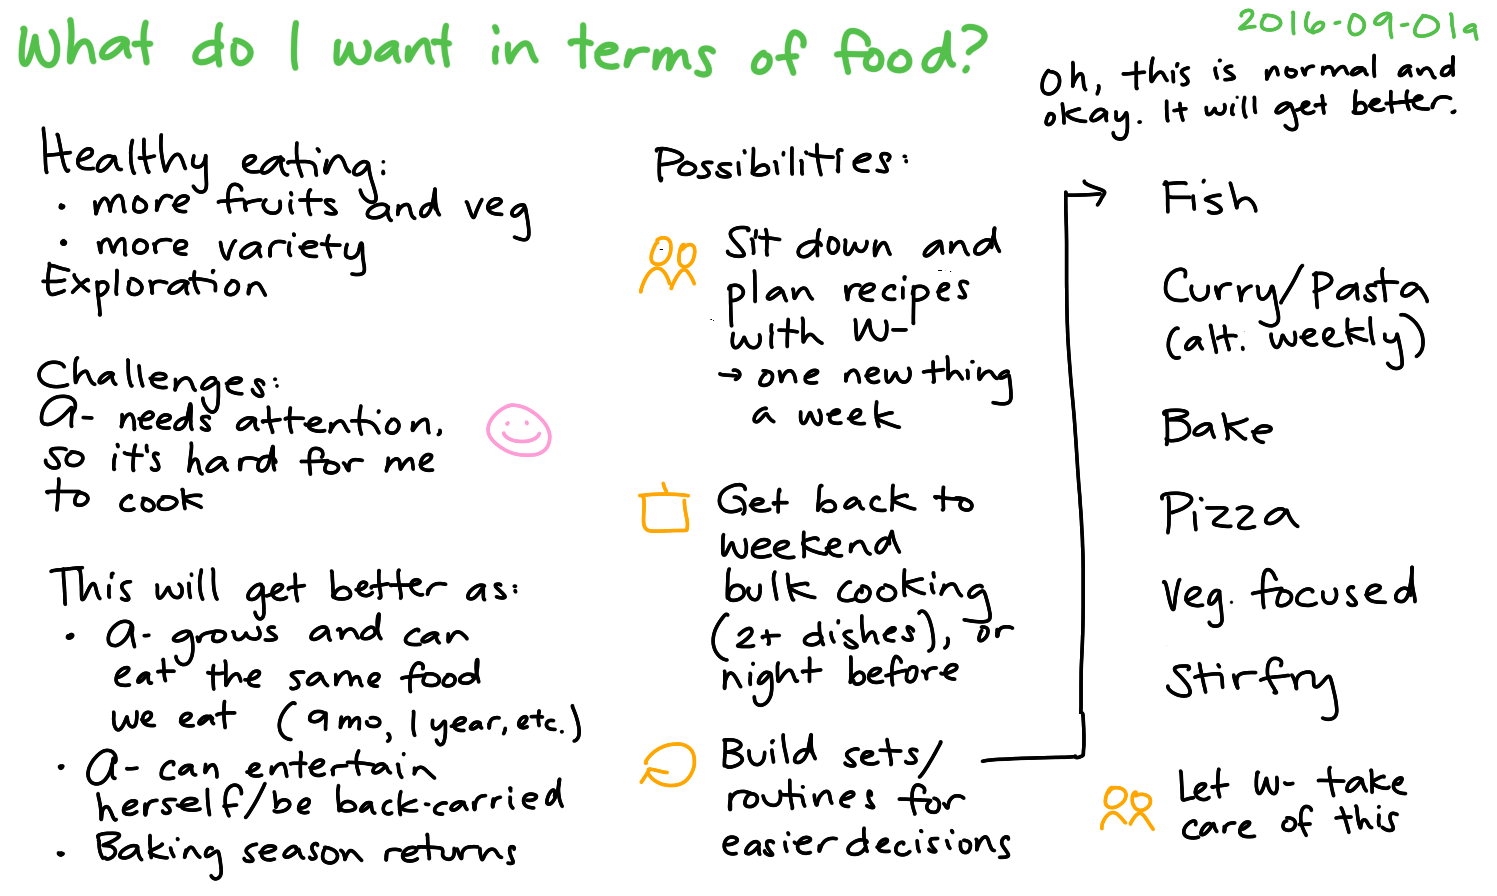 2016-09-01a What do I want in terms of food -- index card #cooking #parenting.png